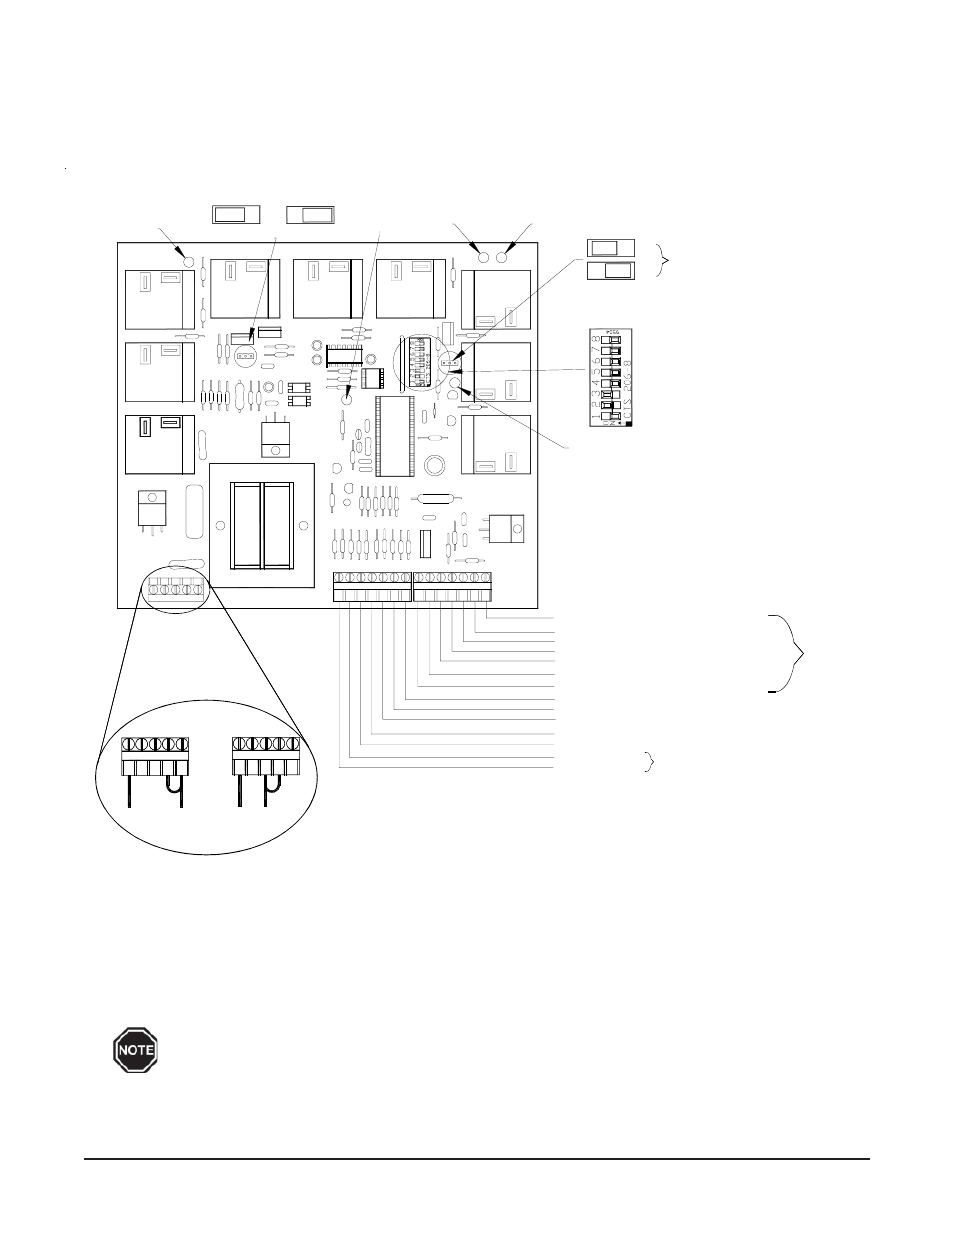 Ccrp Circuit Board Configuration Diagram Steffes Comfort Control 120 Volt Led Light Wiring Relay Panel User Manual Page 6 15